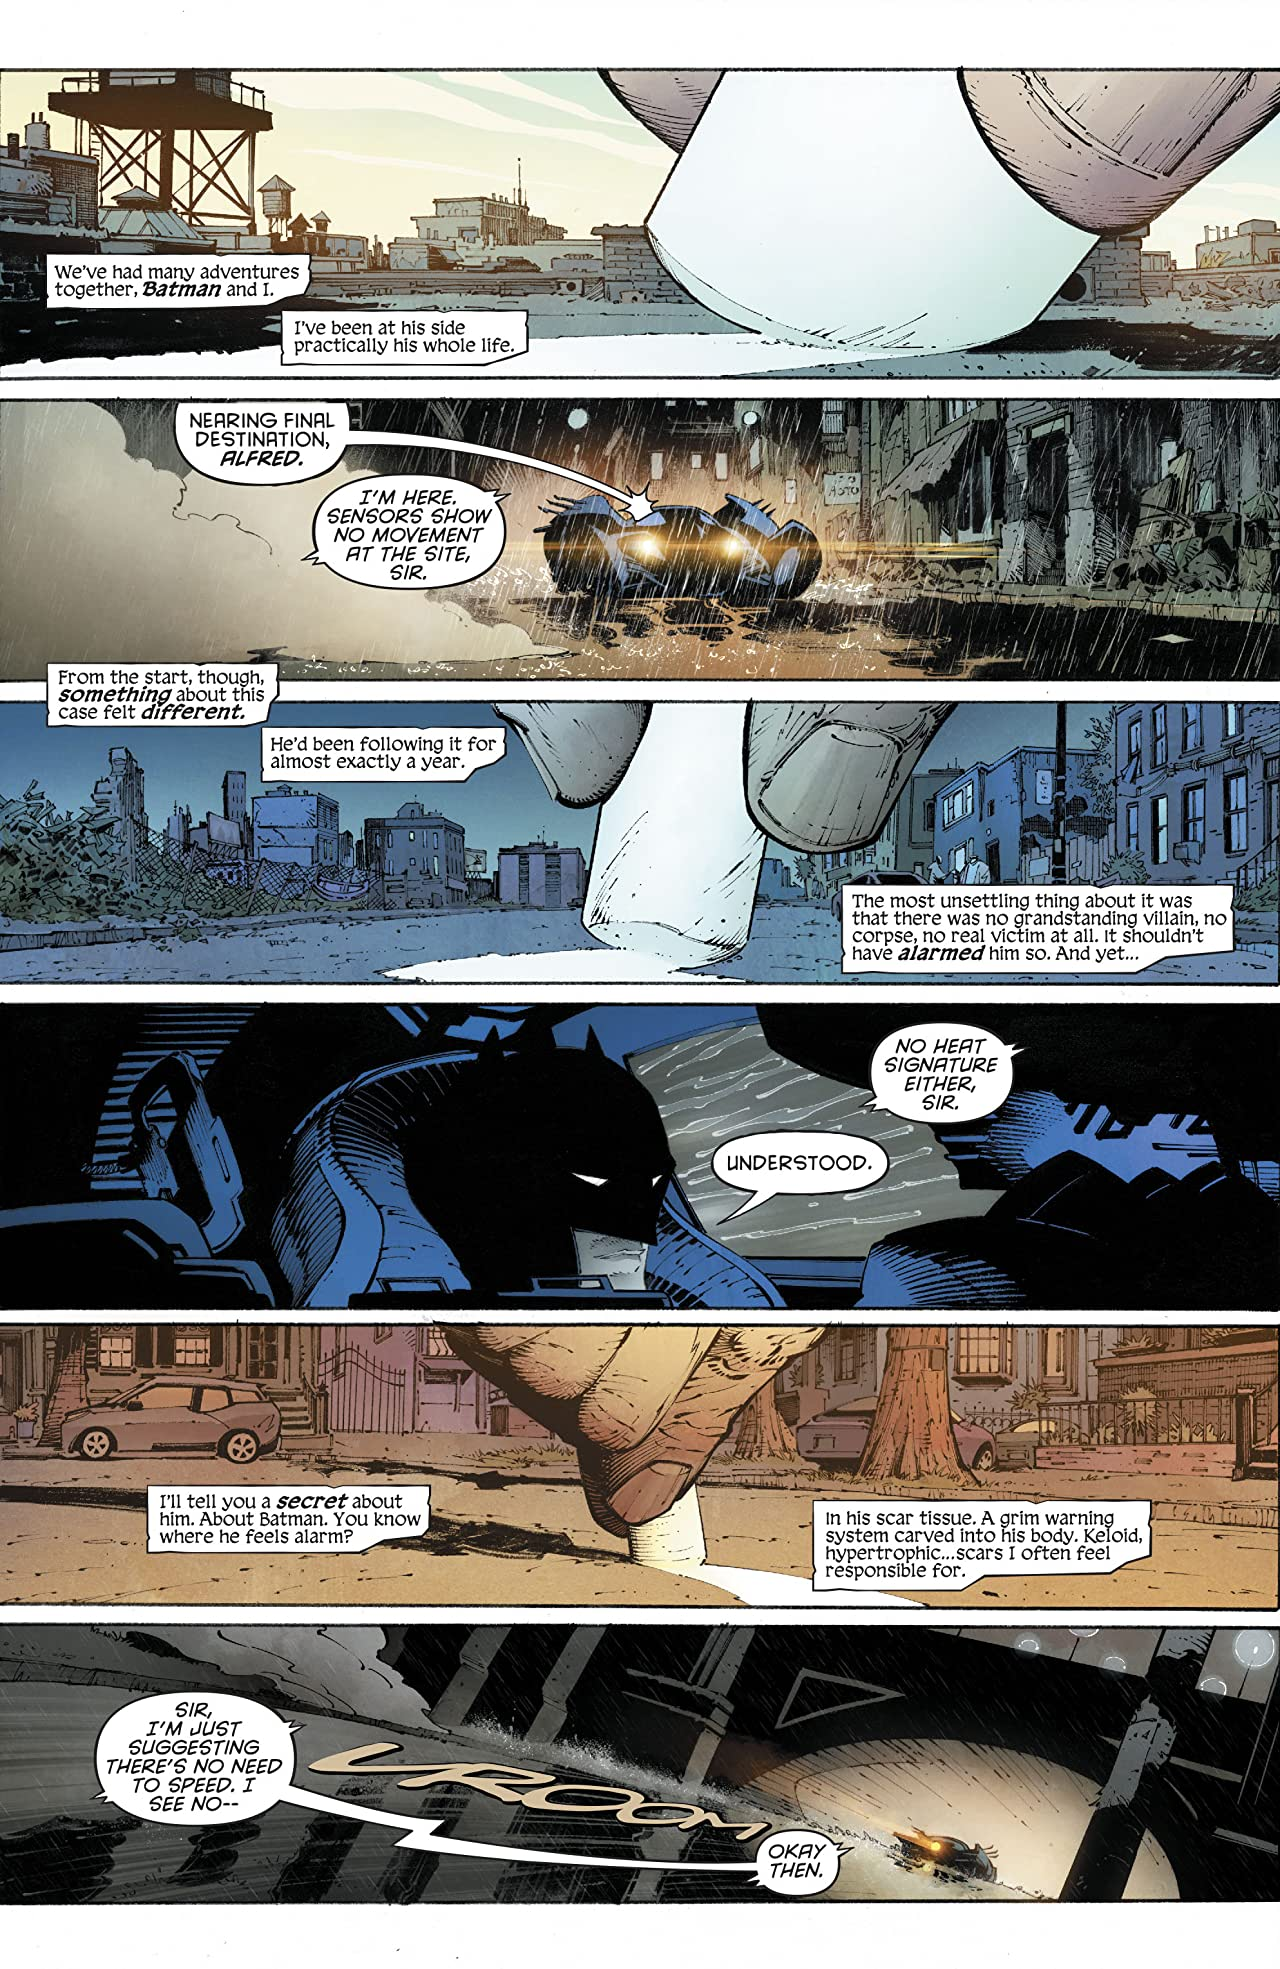 Batman: Last Knight on Earth (2019) #1